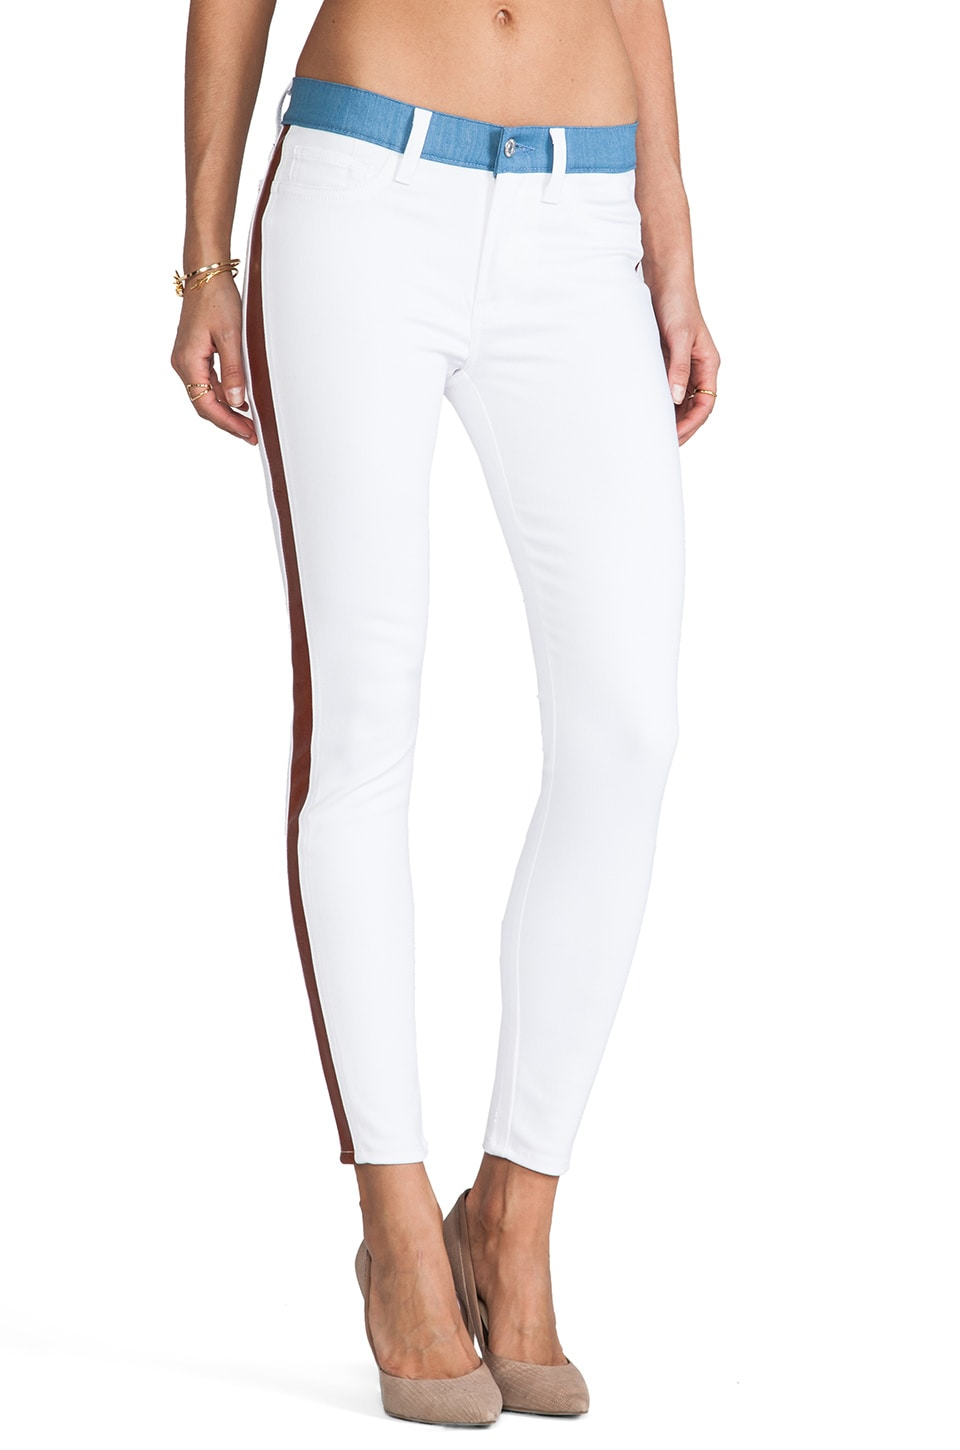 7 For All Mankind Ankle Skinny in White & Cognac Trim